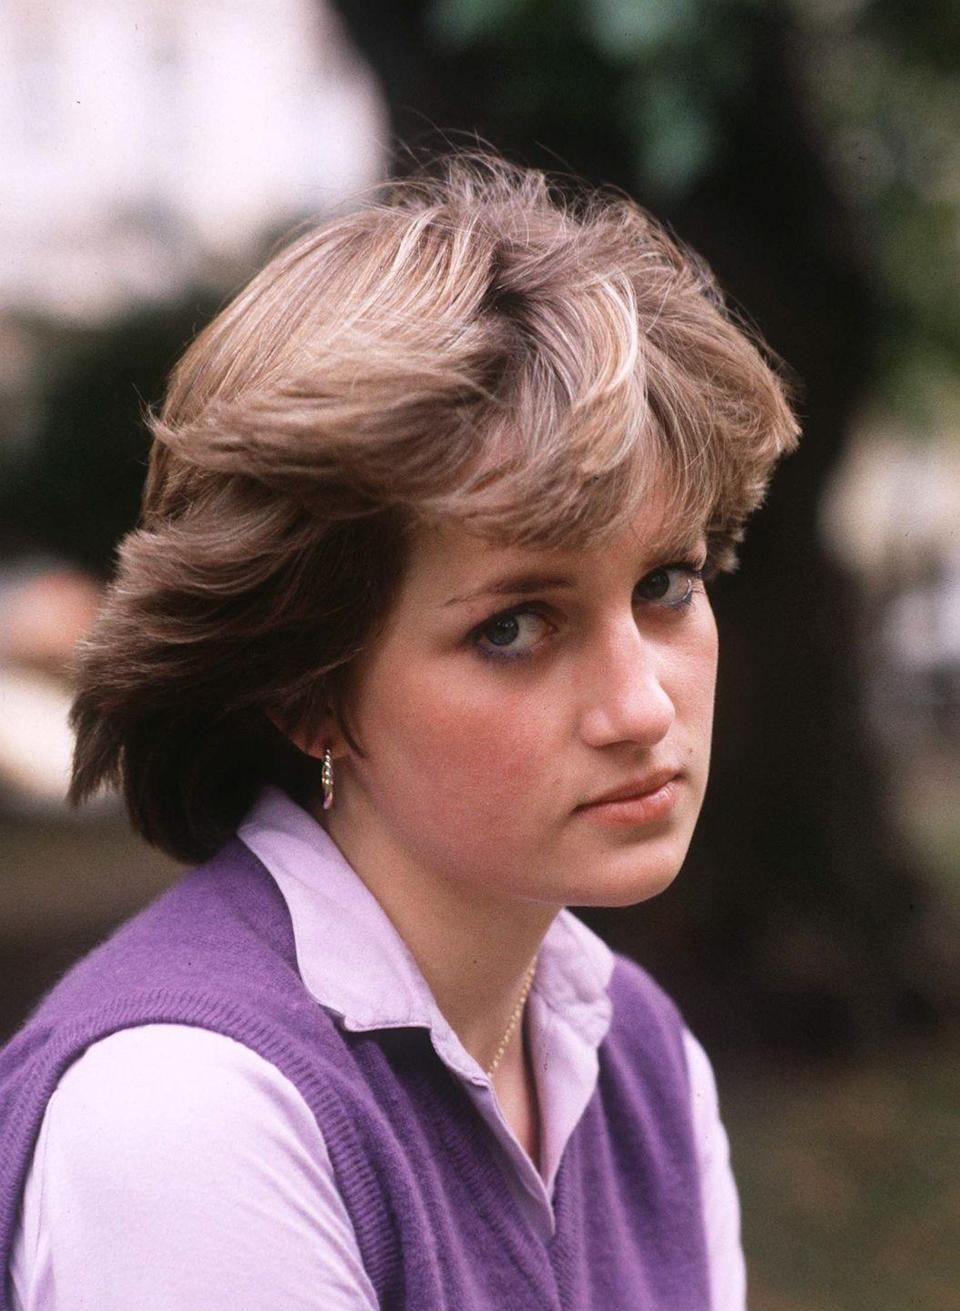 """<p>Diana looks pensive in this portrait of her at age 19, when she was still a teacher <a href=""""https://www.youngenglandkindergarten.co.uk/Young-England-in-the-news/"""" rel=""""nofollow noopener"""" target=""""_blank"""" data-ylk=""""slk:The Young England Kindergarten Nursery School"""" class=""""link rapid-noclick-resp"""">The Young England Kindergarten Nursery School </a>in Pimlico, London.</p>"""